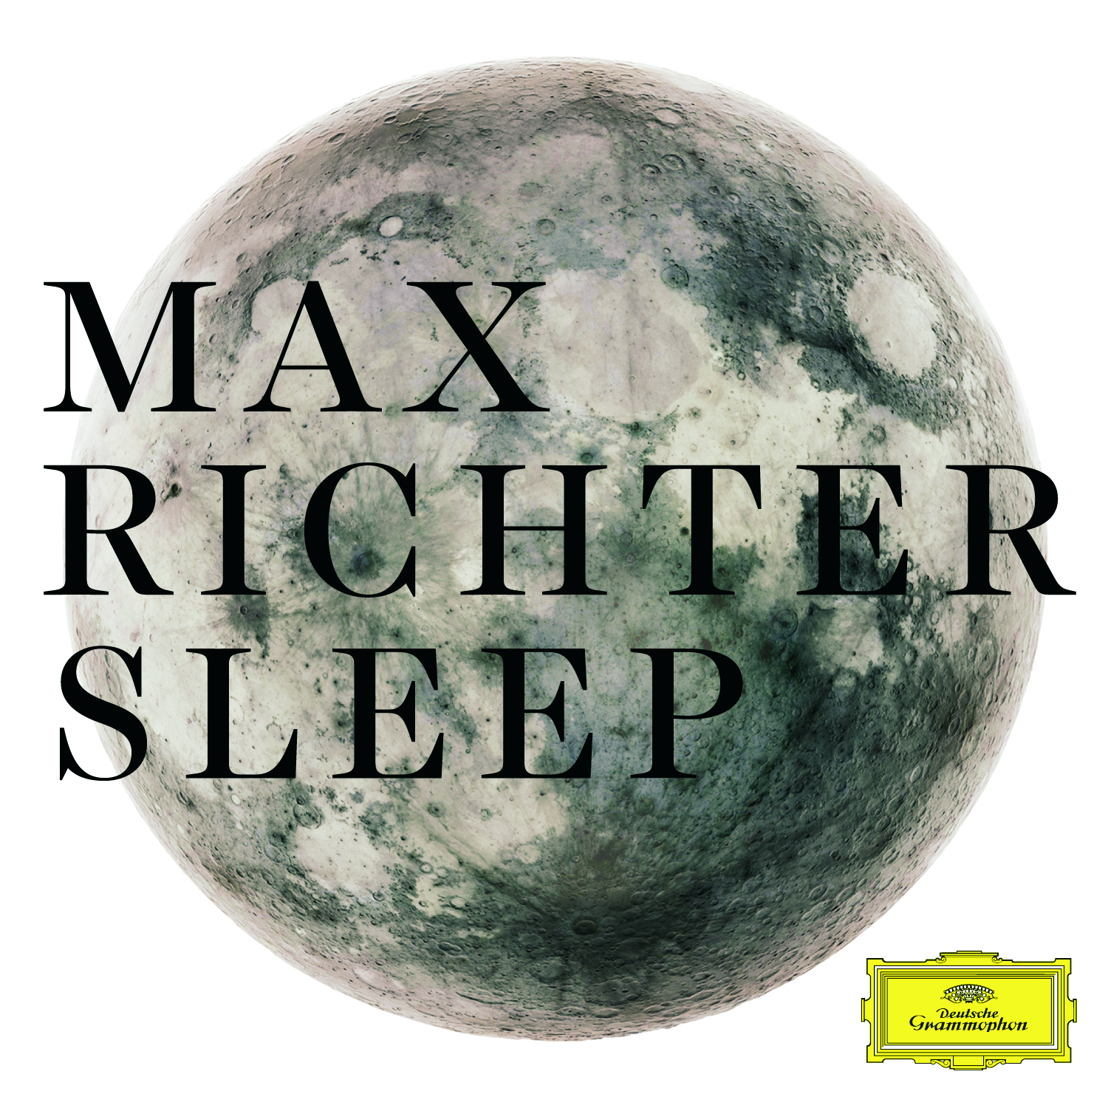 Sleep. Max Richter (c) Studio Richter Mahr.tiff